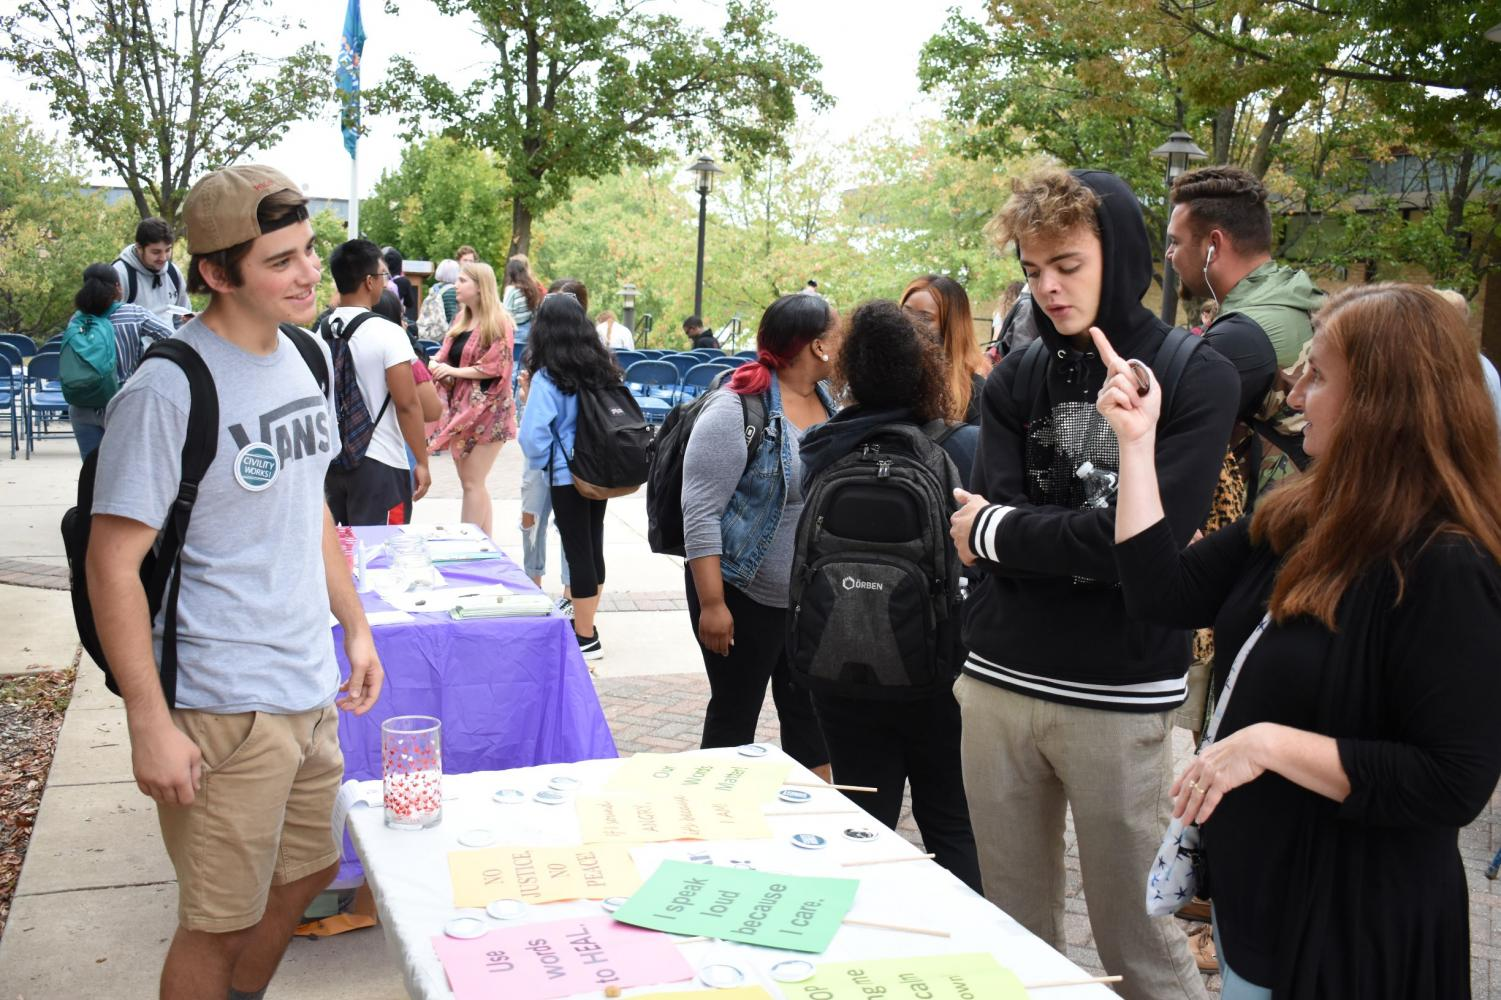 Students engage in one of numerous events at Civility Matters.